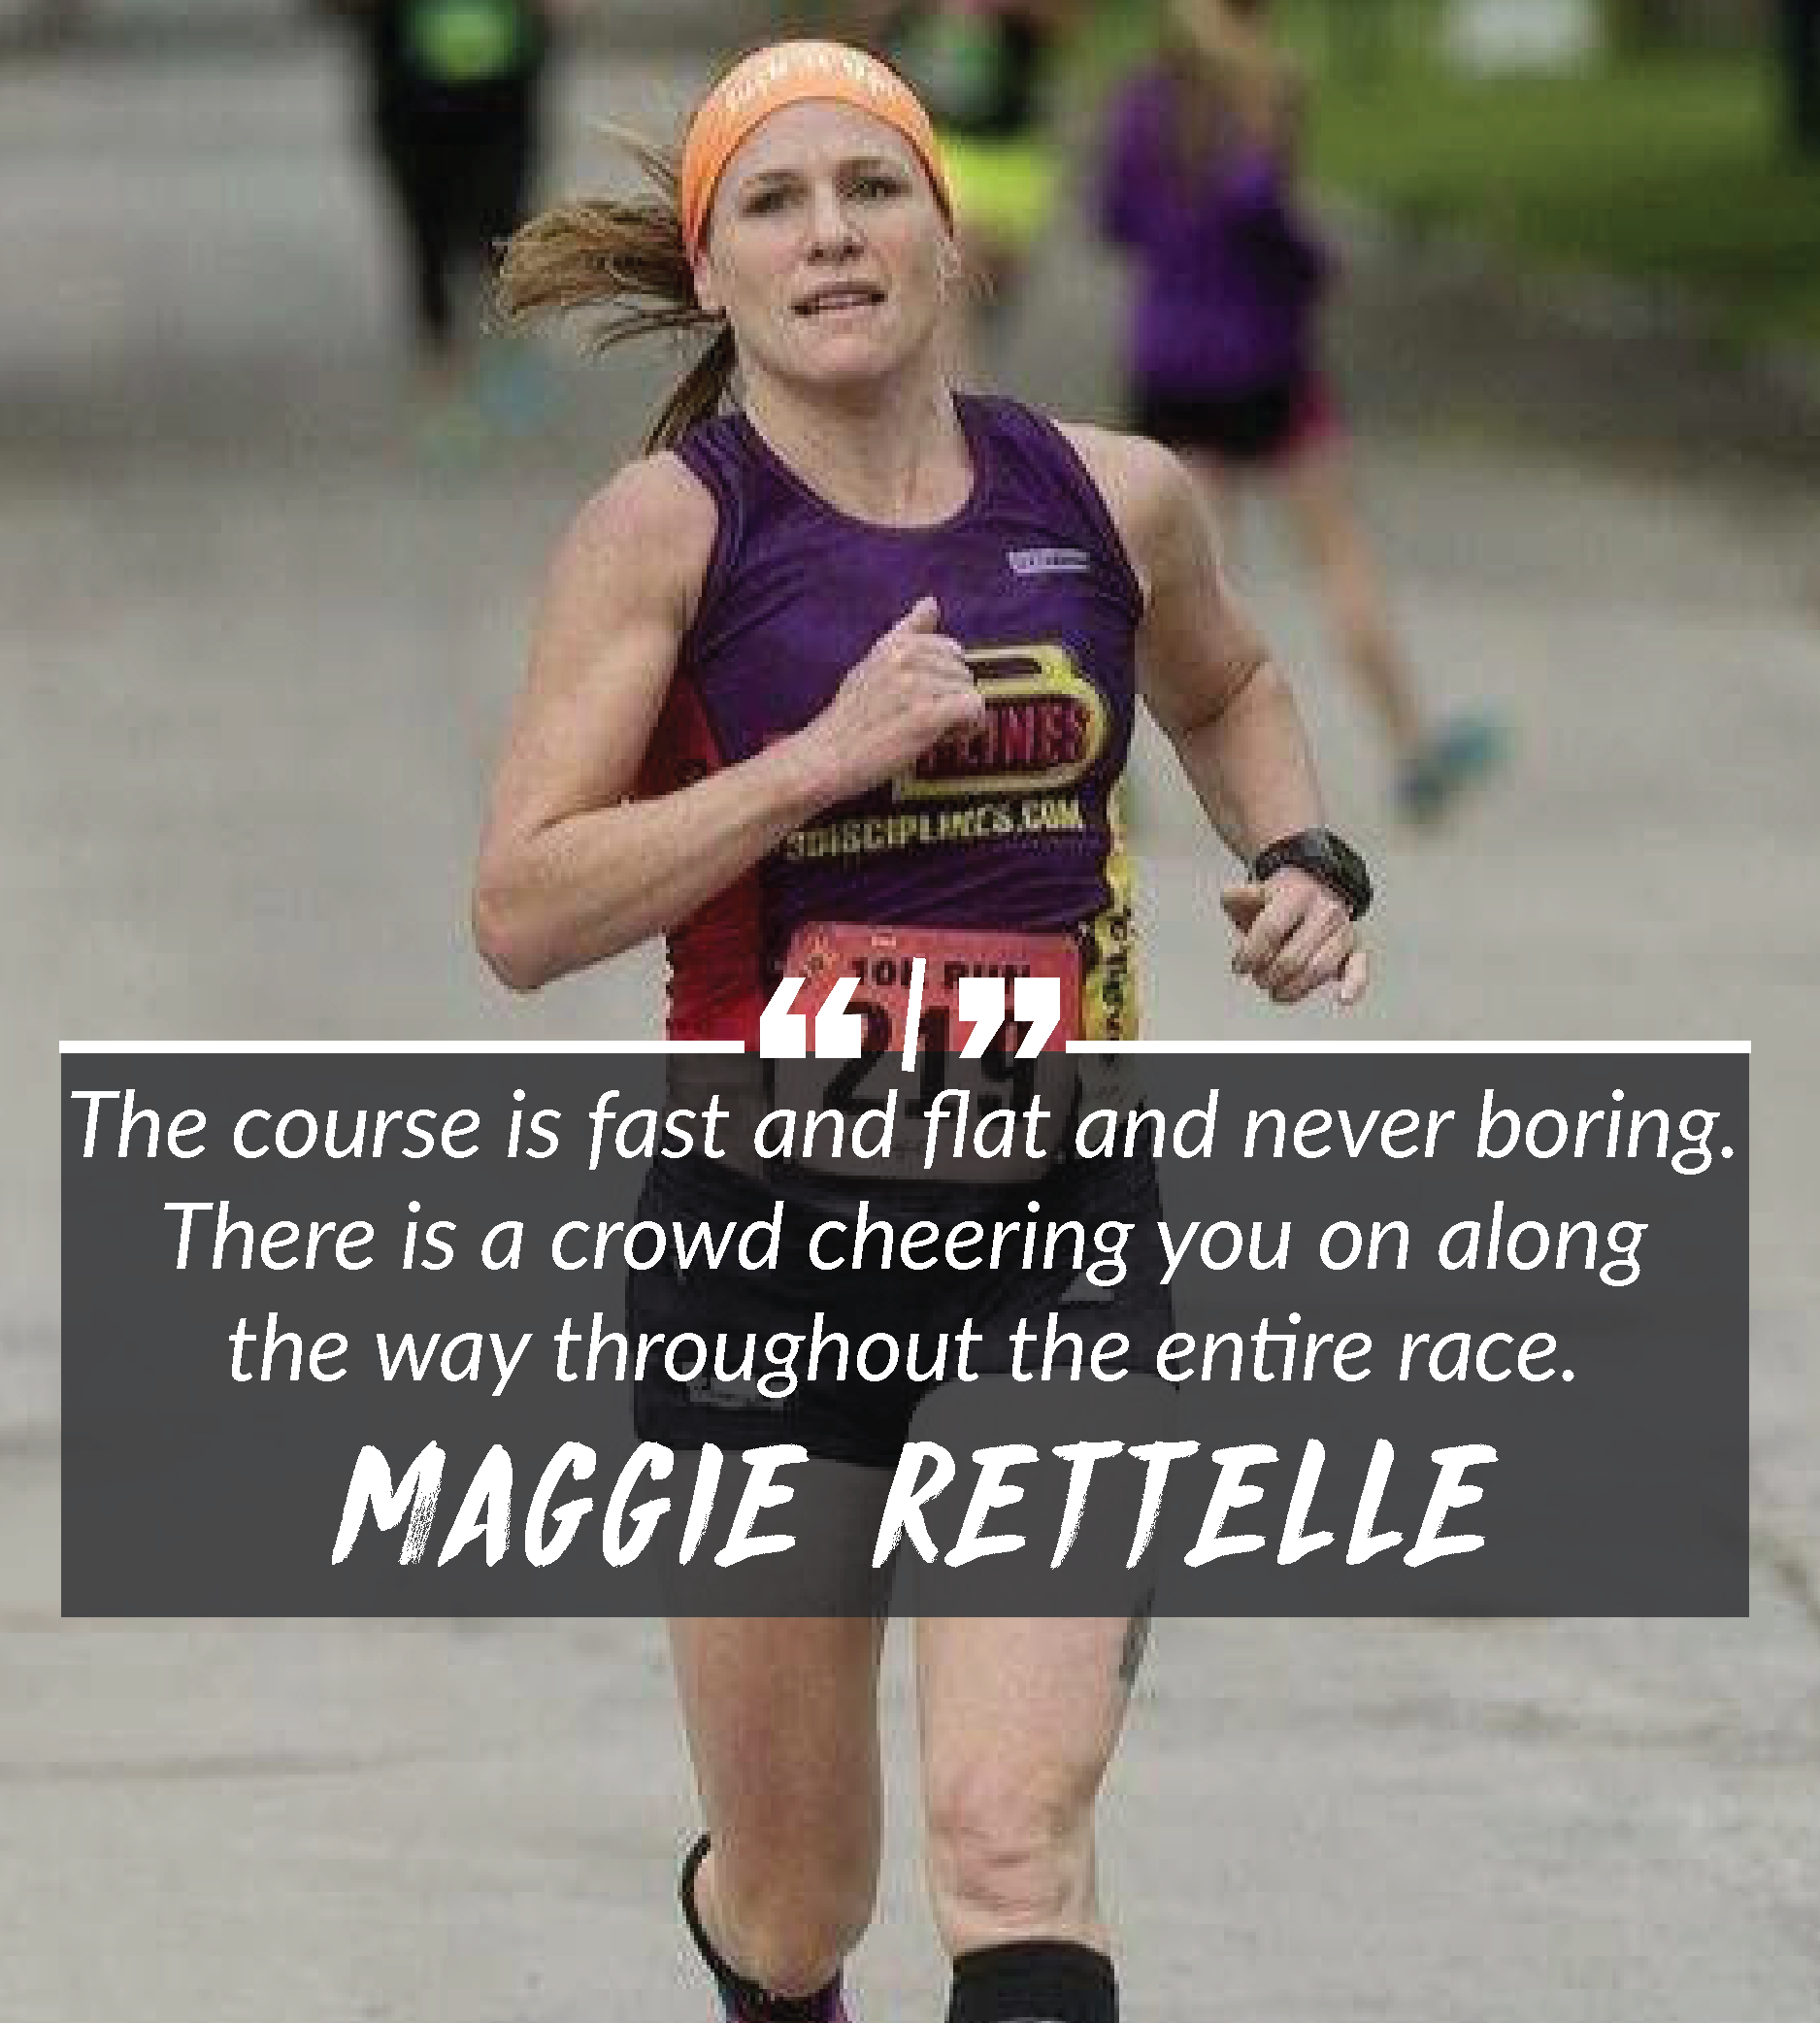 Competitive runner Maggie Rettelle has earned top honors in the 10K at the Dow RunWalk.